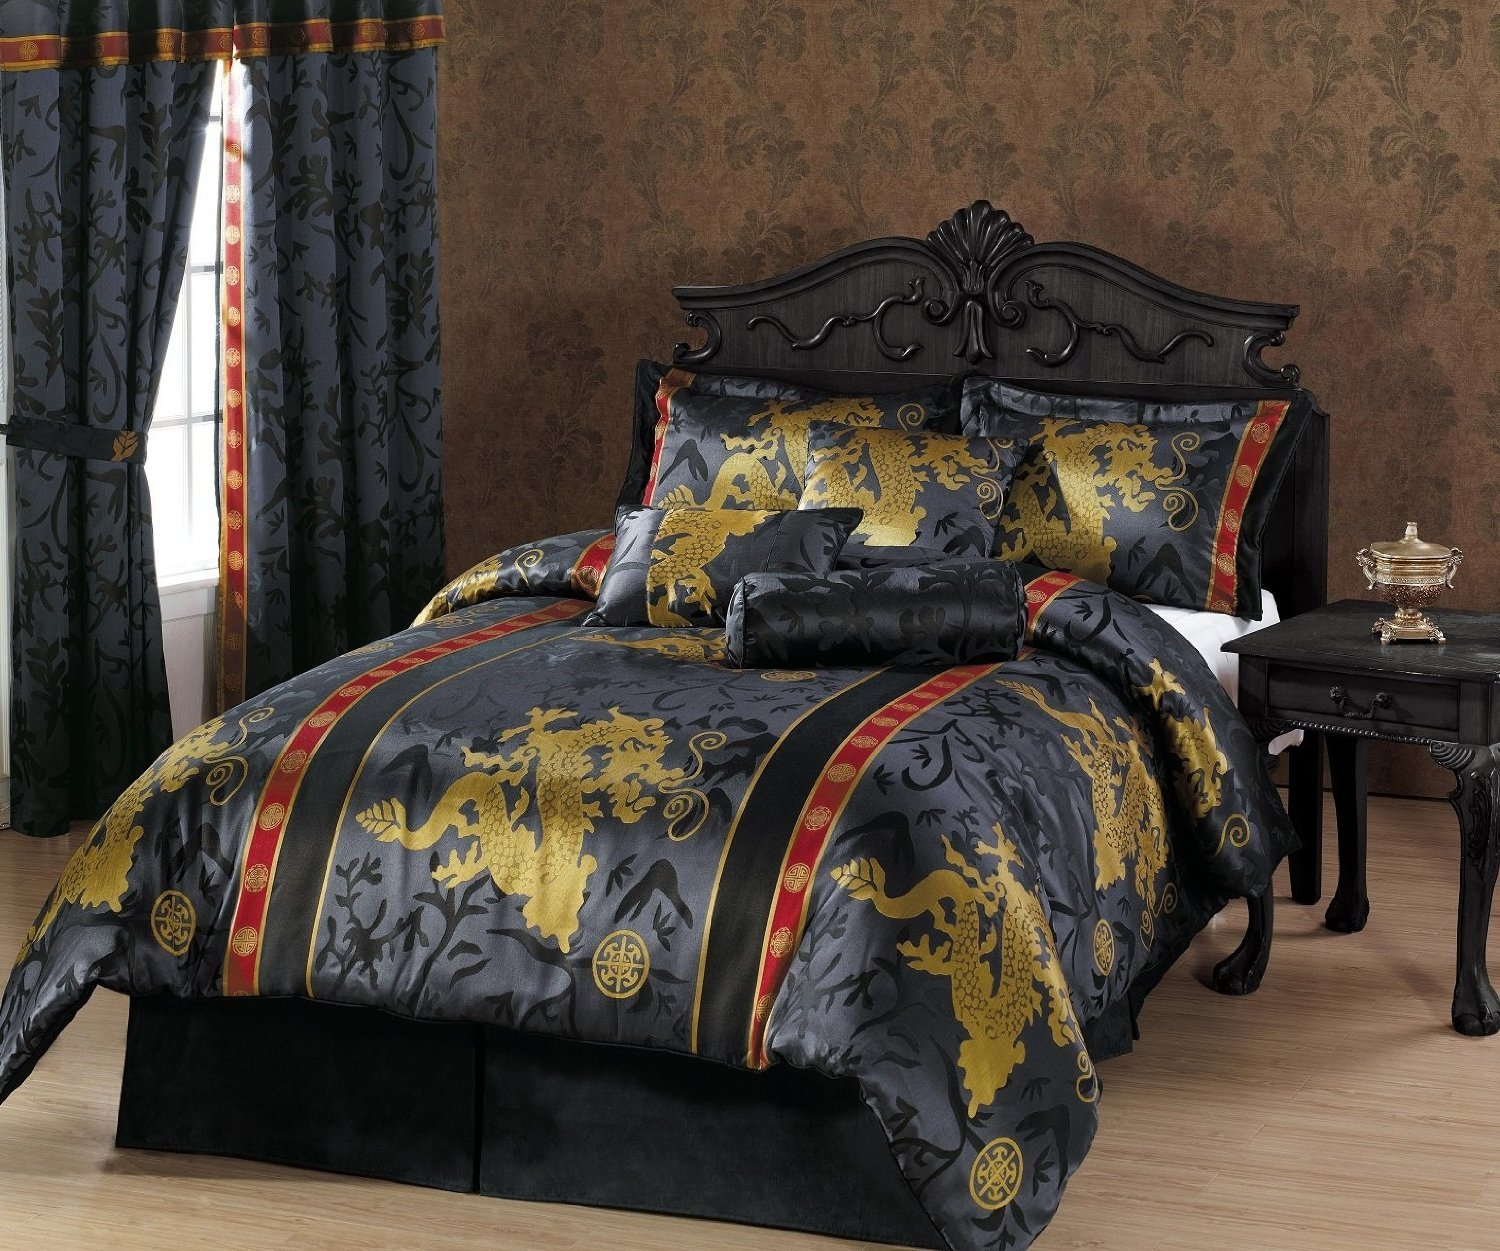 Chezmoi Collection 7-Piece Palace Dragon Jacquard Comforter Set, California/California King, Black/Gold/Red